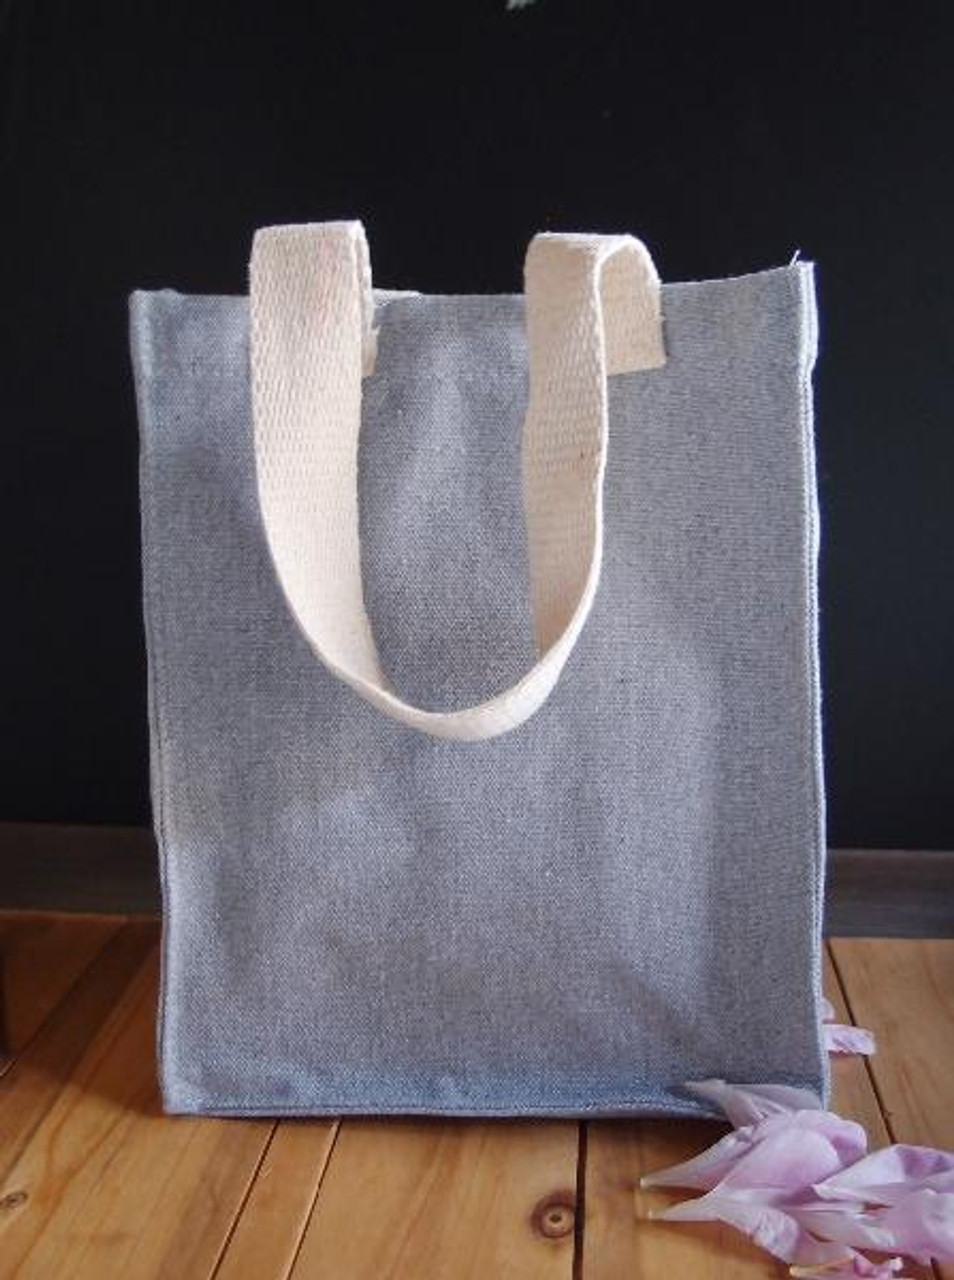 Grey Recycled Canvas Tote Bag 8 x 10 x 5 inches, Wholesale Canvas Tote Bags   Packaging Decor